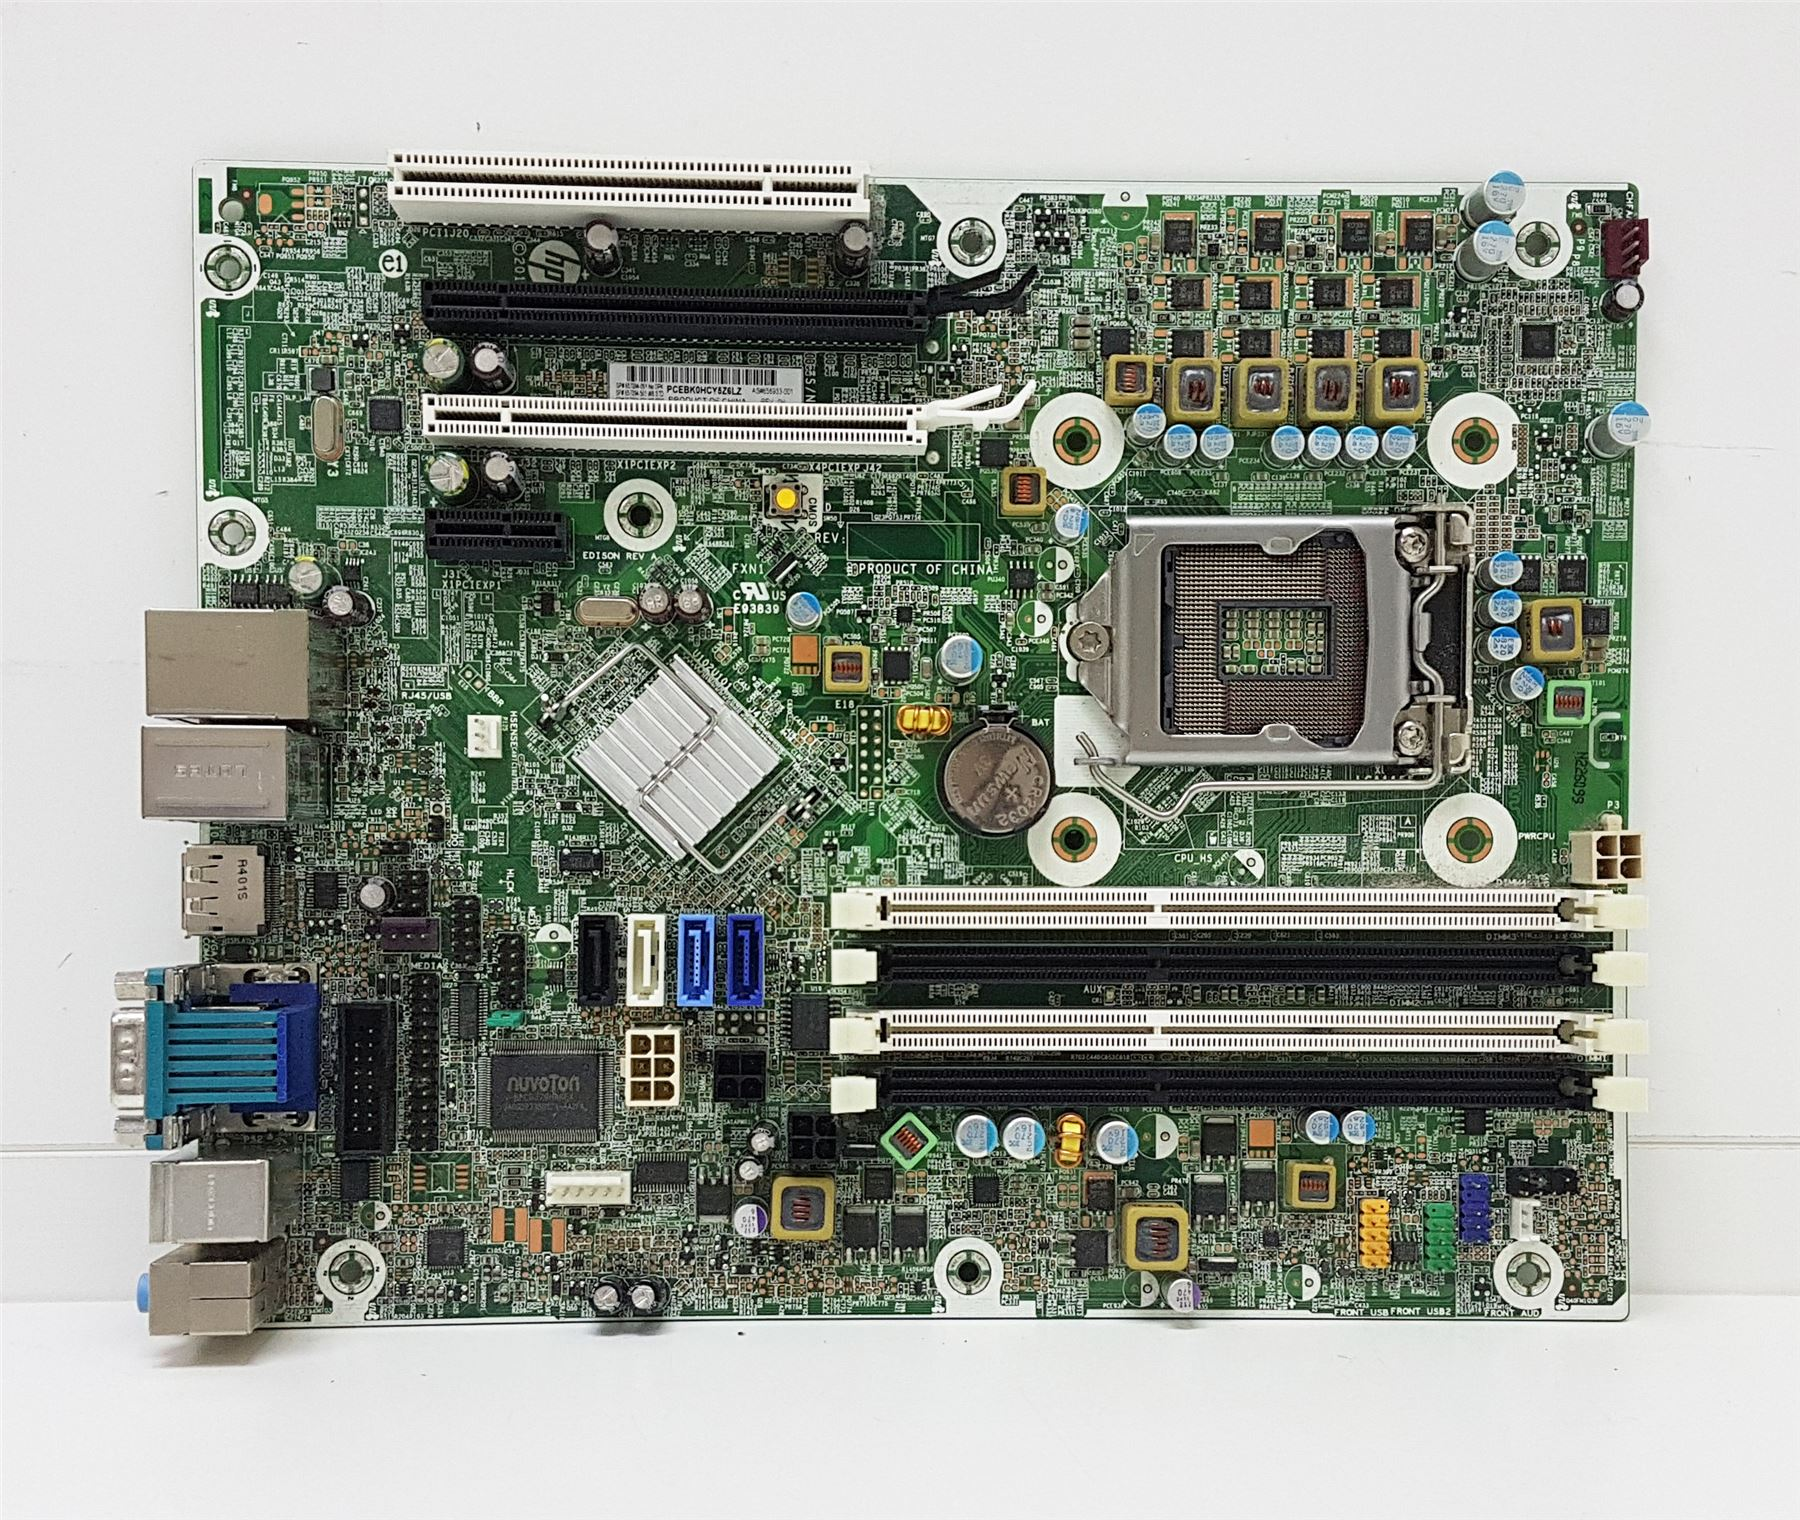 Details about HP Compaq Elite 8300 SFF Motherboard LGA1155 3rd | 657094-001  656933-001